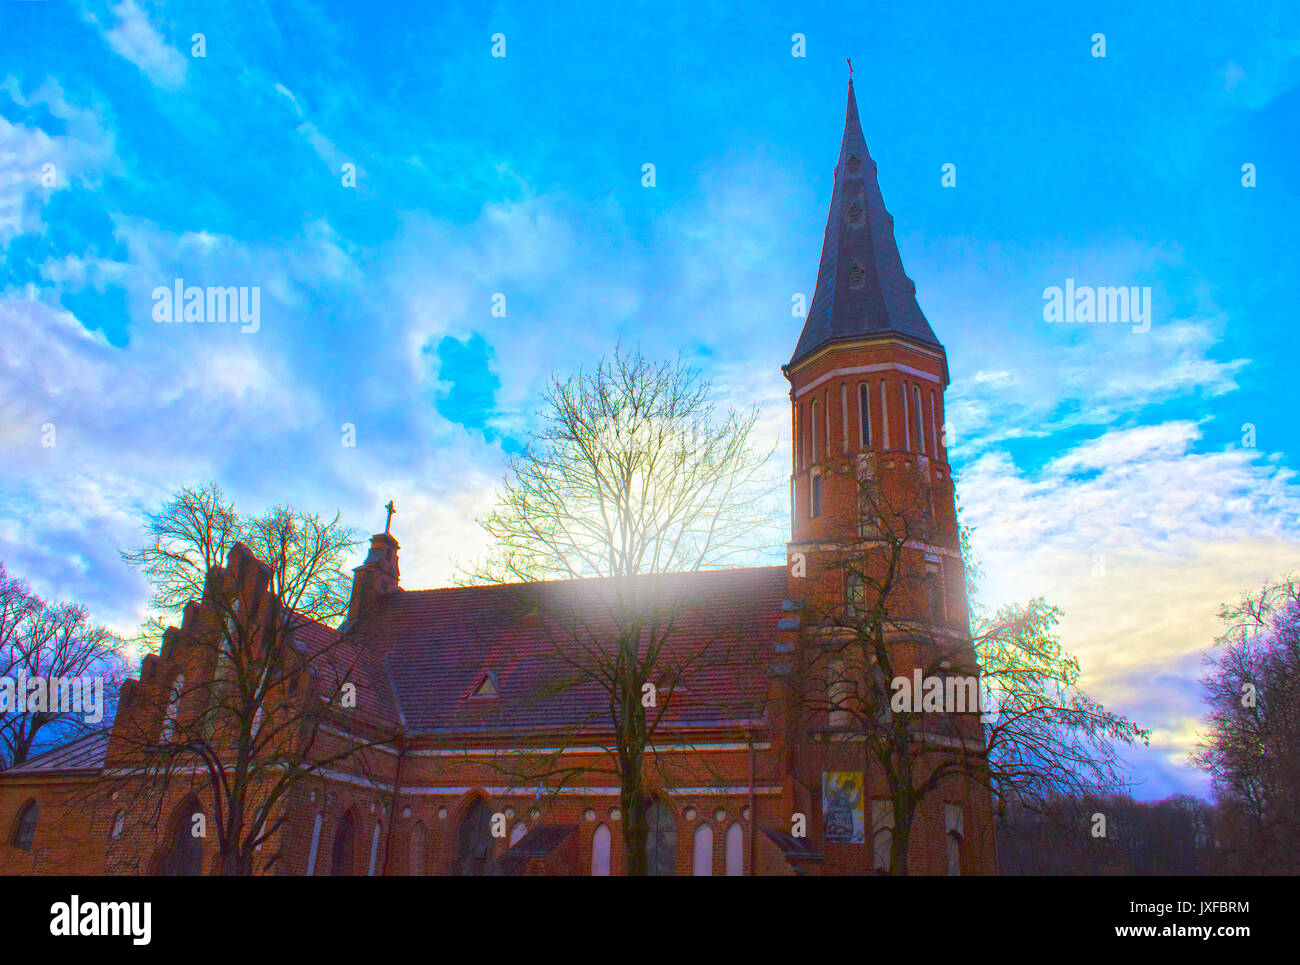 Church of Vytautas in old town. Kaunas, Lithuania - Stock Image